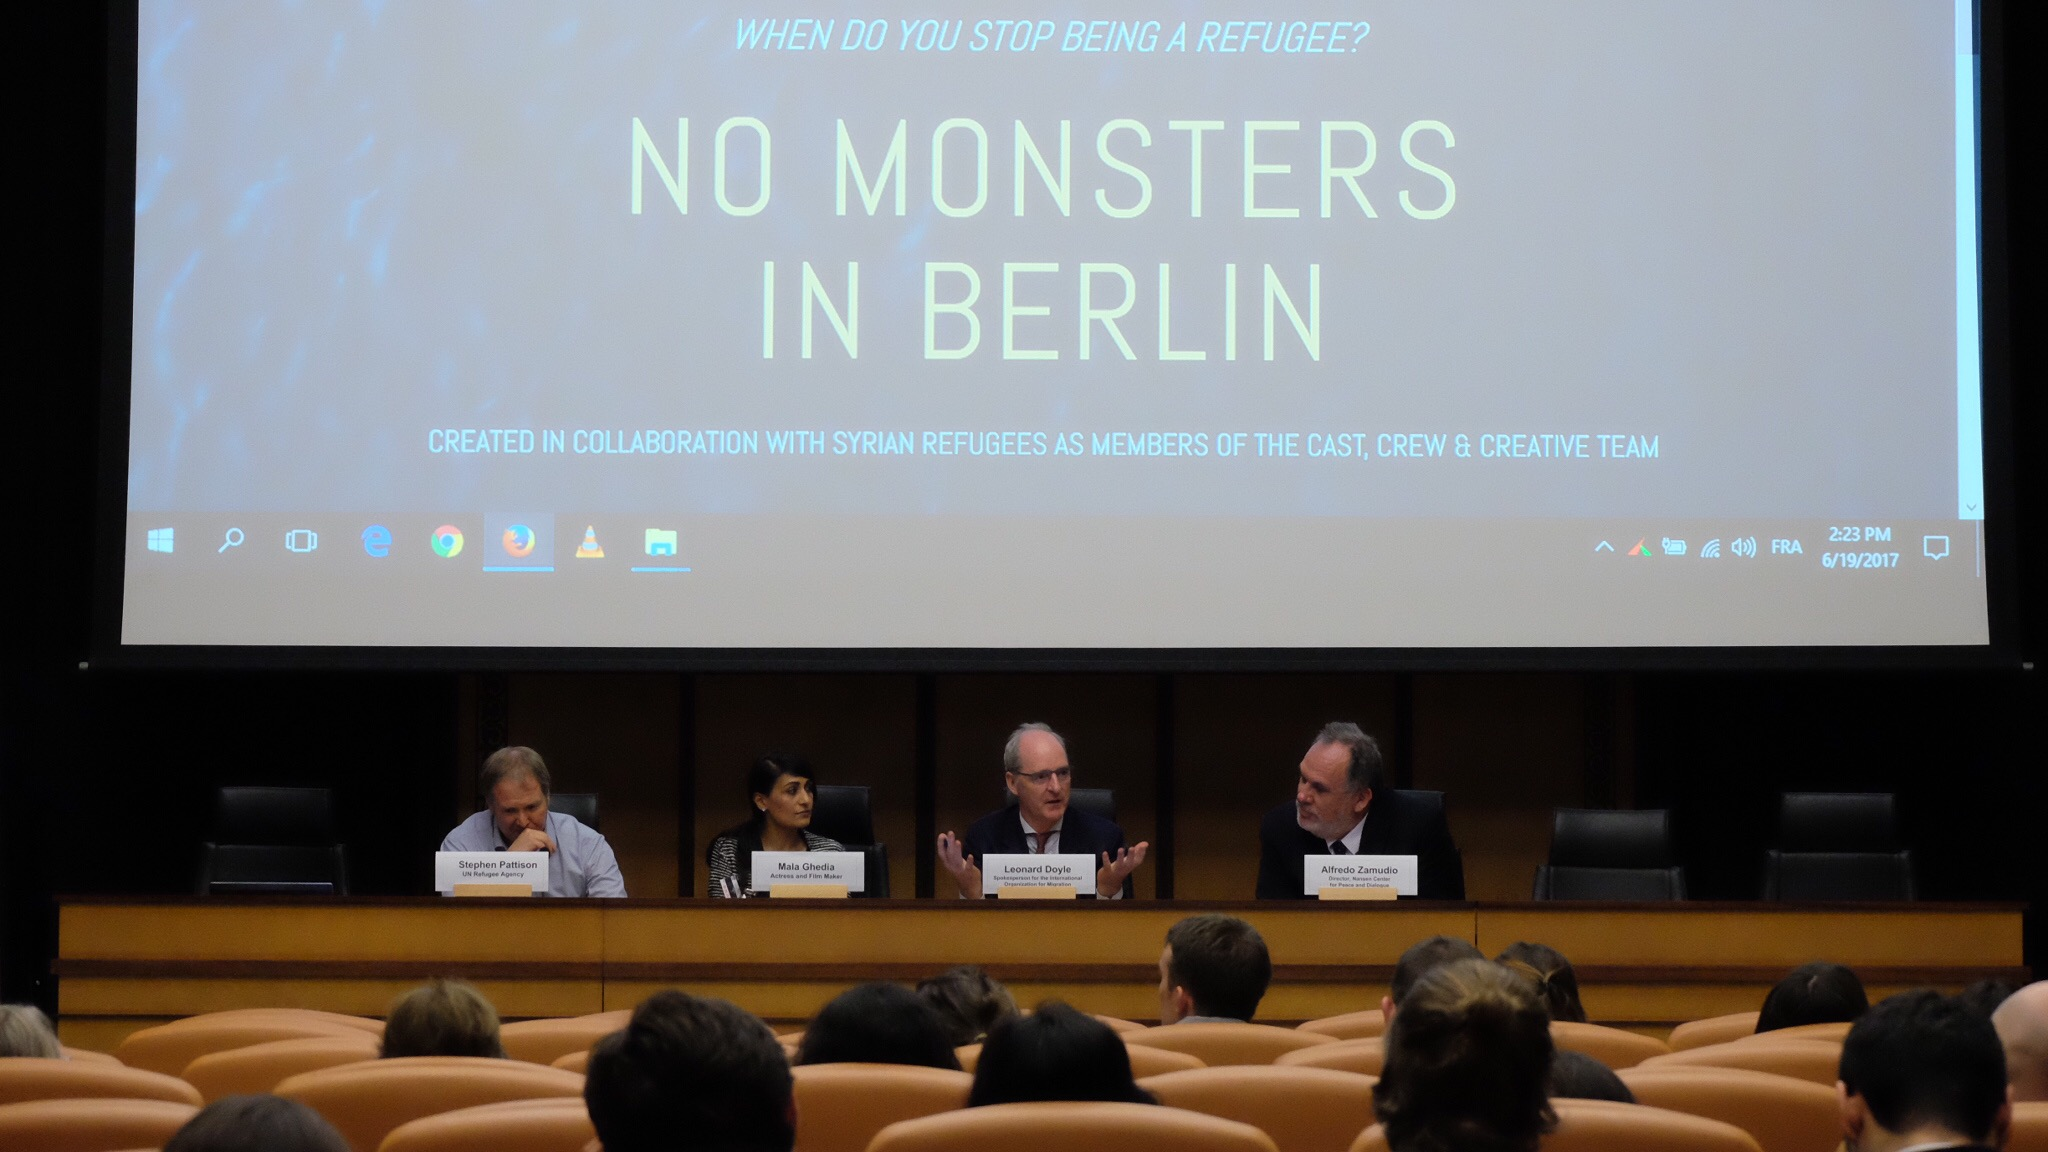 Screening at the UNITED NATIONS in June 2017